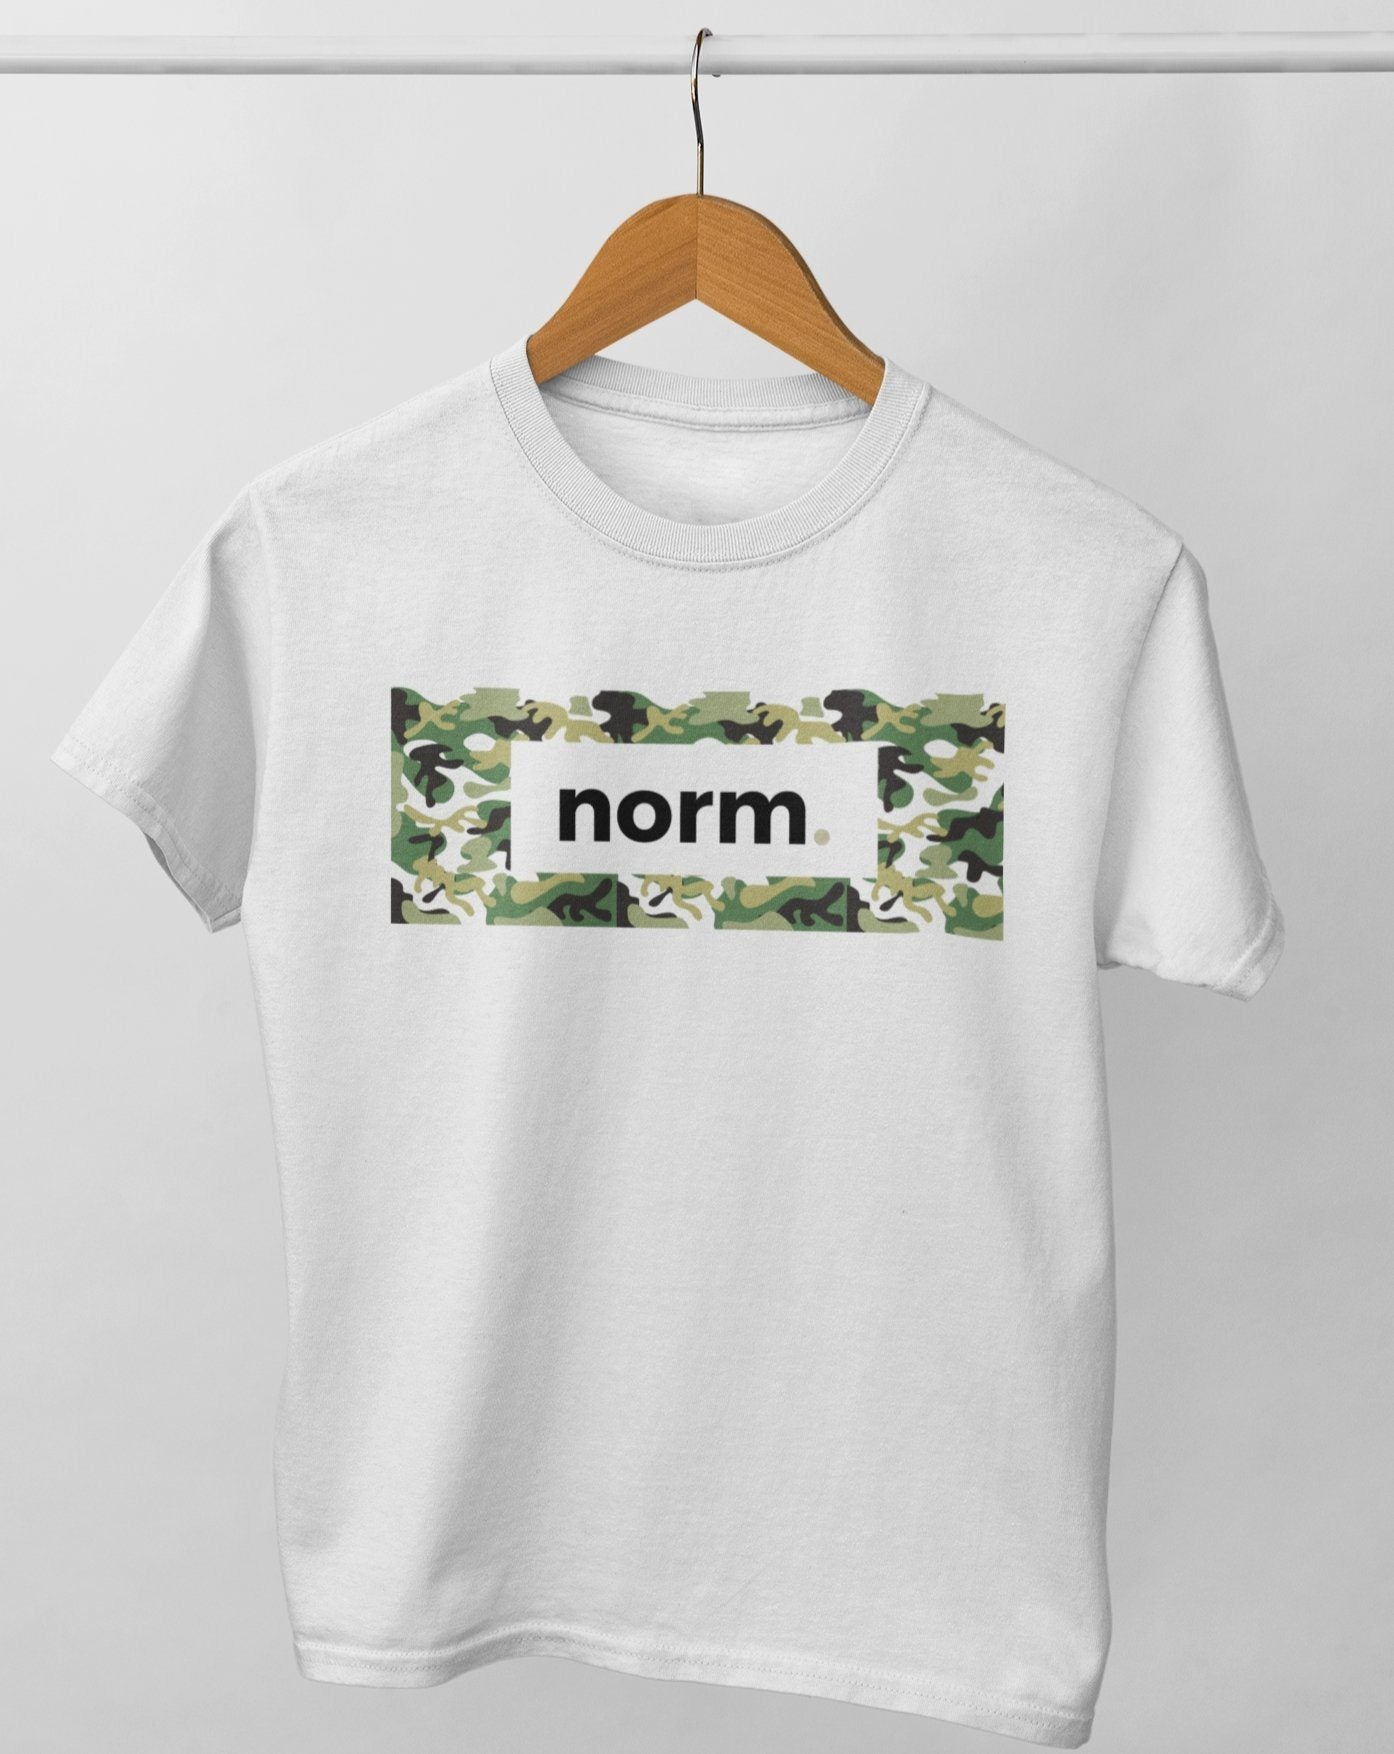 Caleb adult tee. norm. White XS